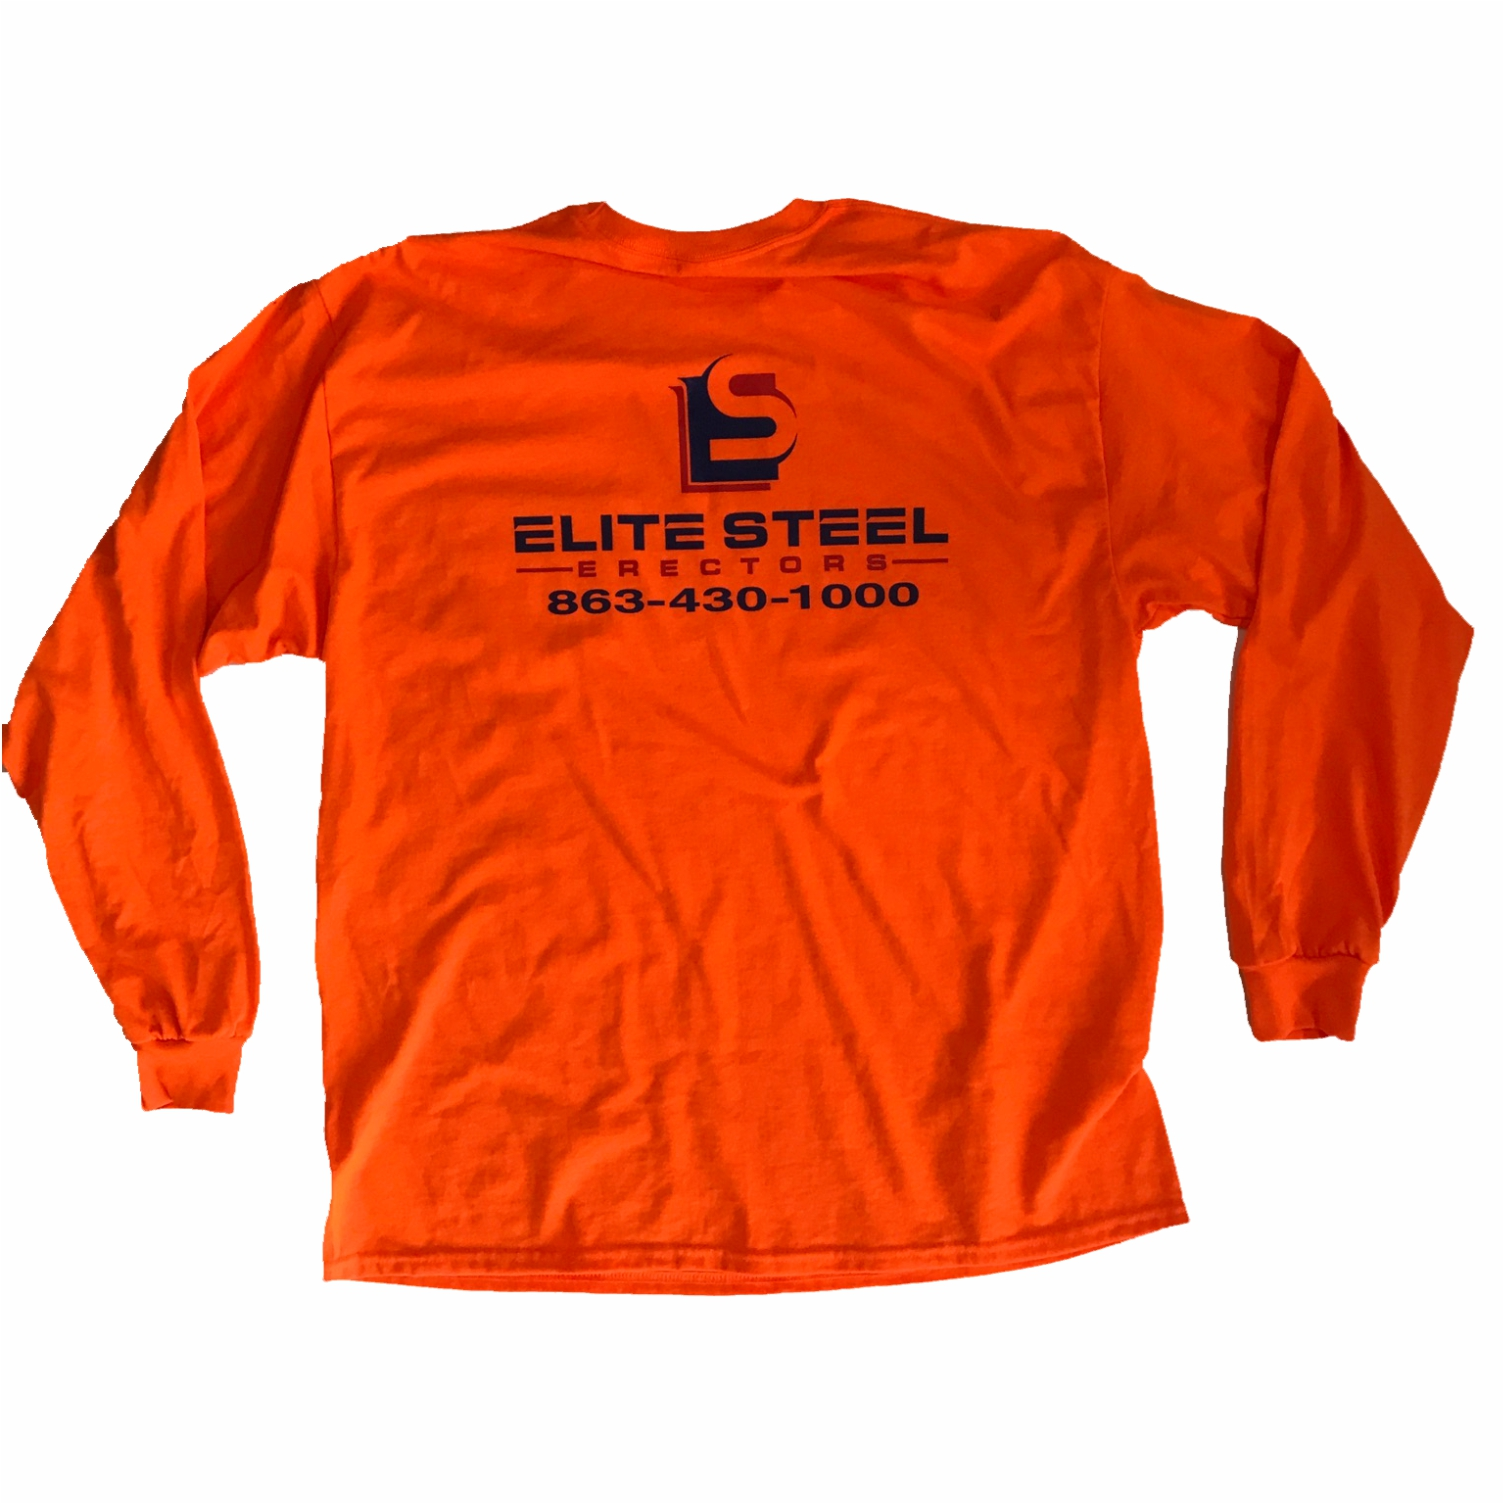 Sp Elite Tshirt